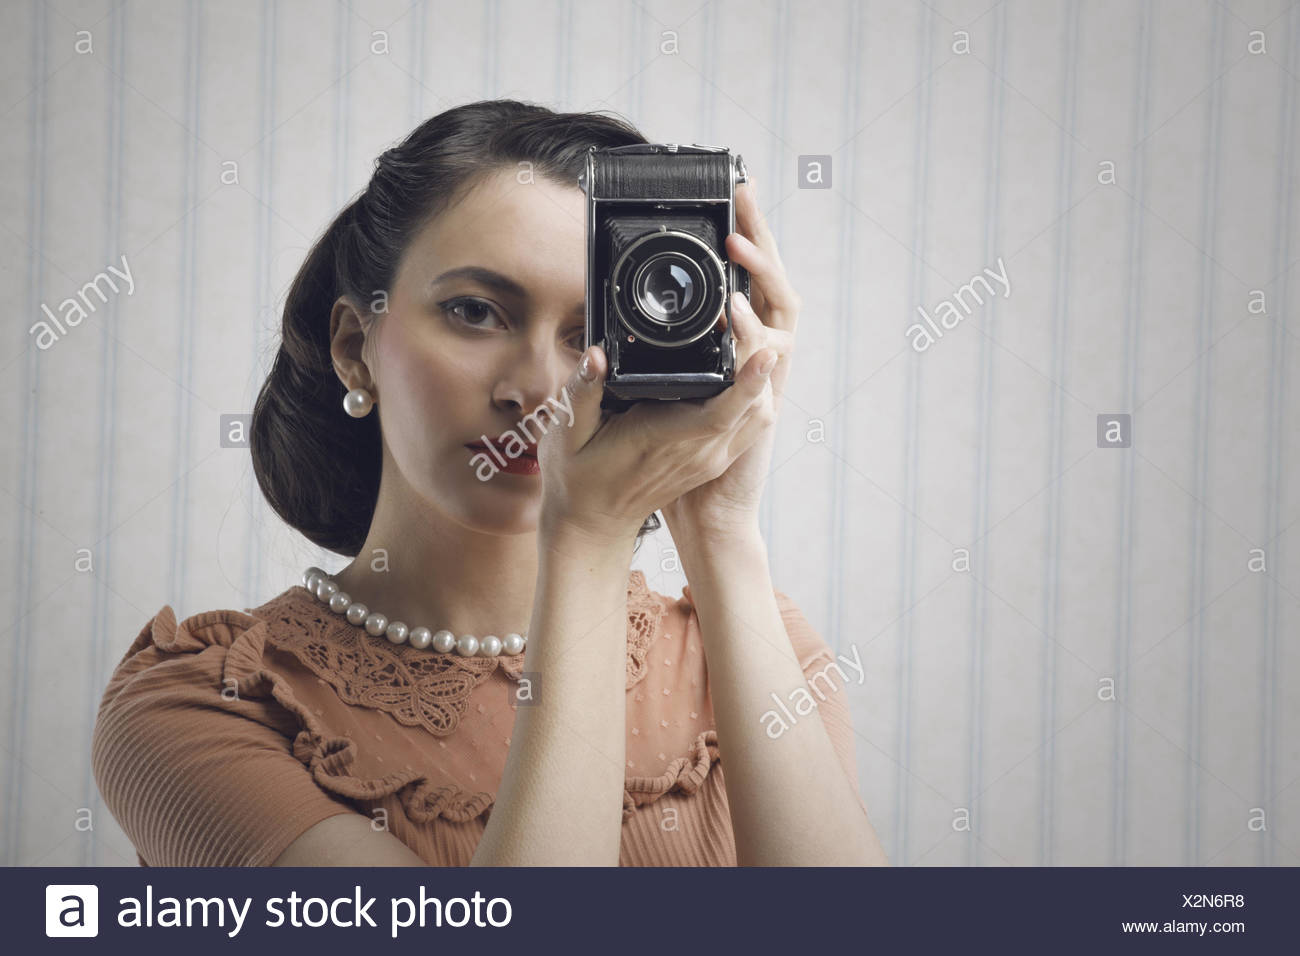 8c89526fcb8 1960 Style Young Woman Photos   1960 Style Young Woman Images - Alamy